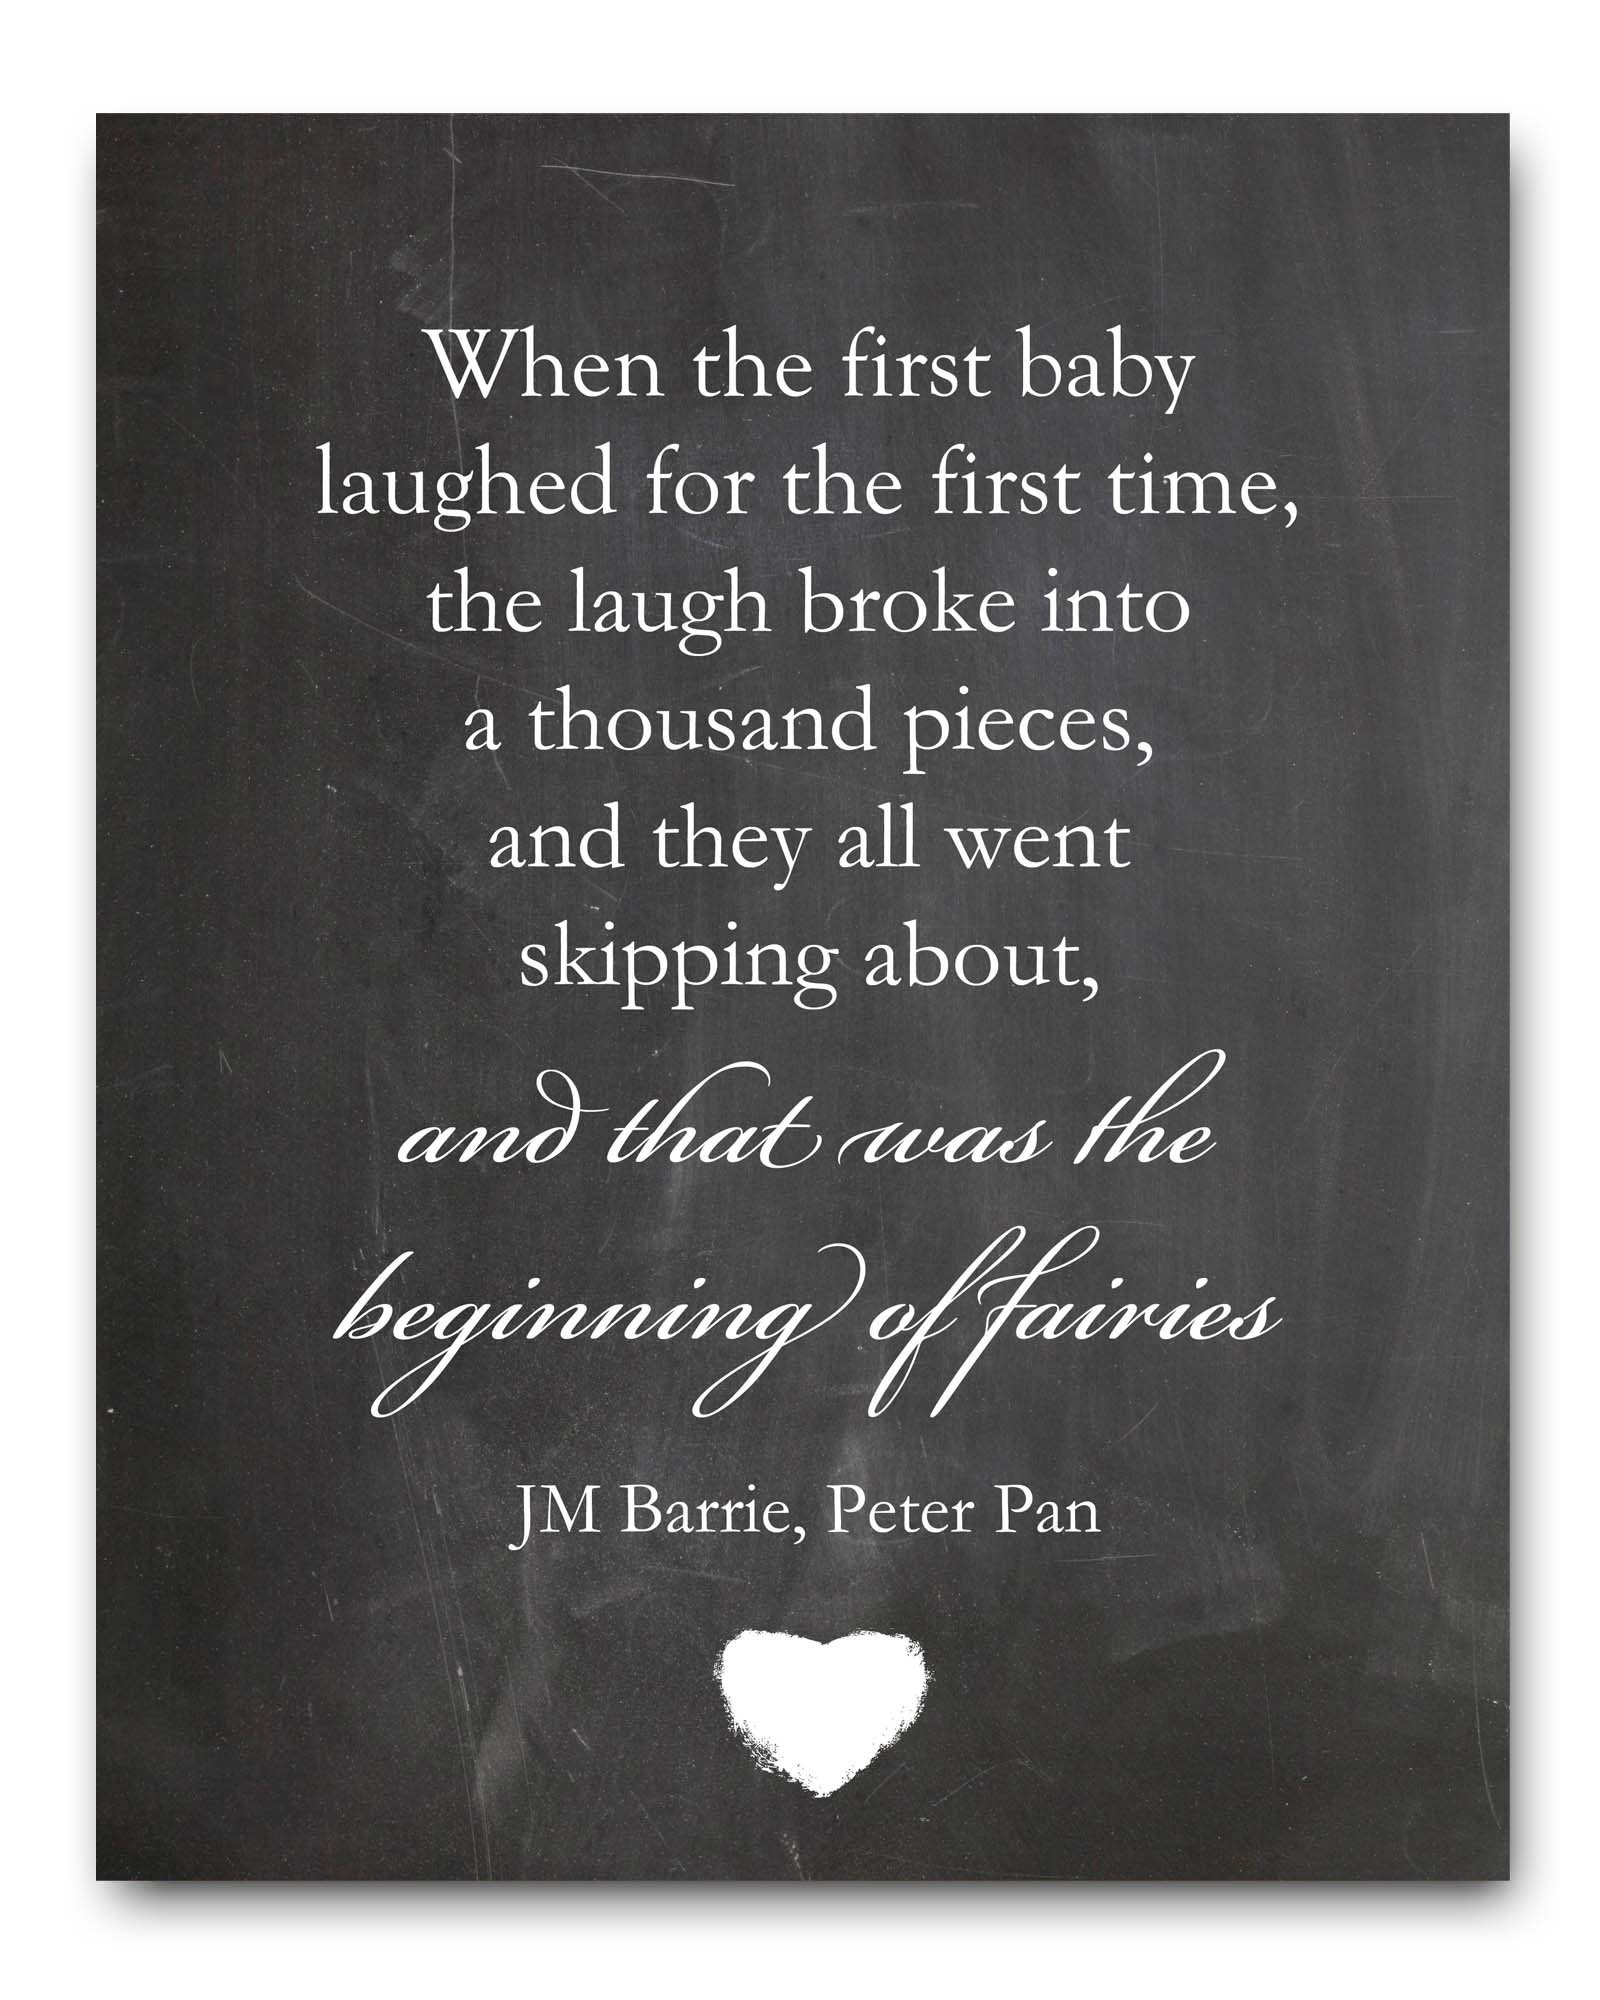 Nursery Wall Art Peter Pan Quote Chalkboard Print 8x10'', Perfect Baby Shower Gift or New Baby Gift